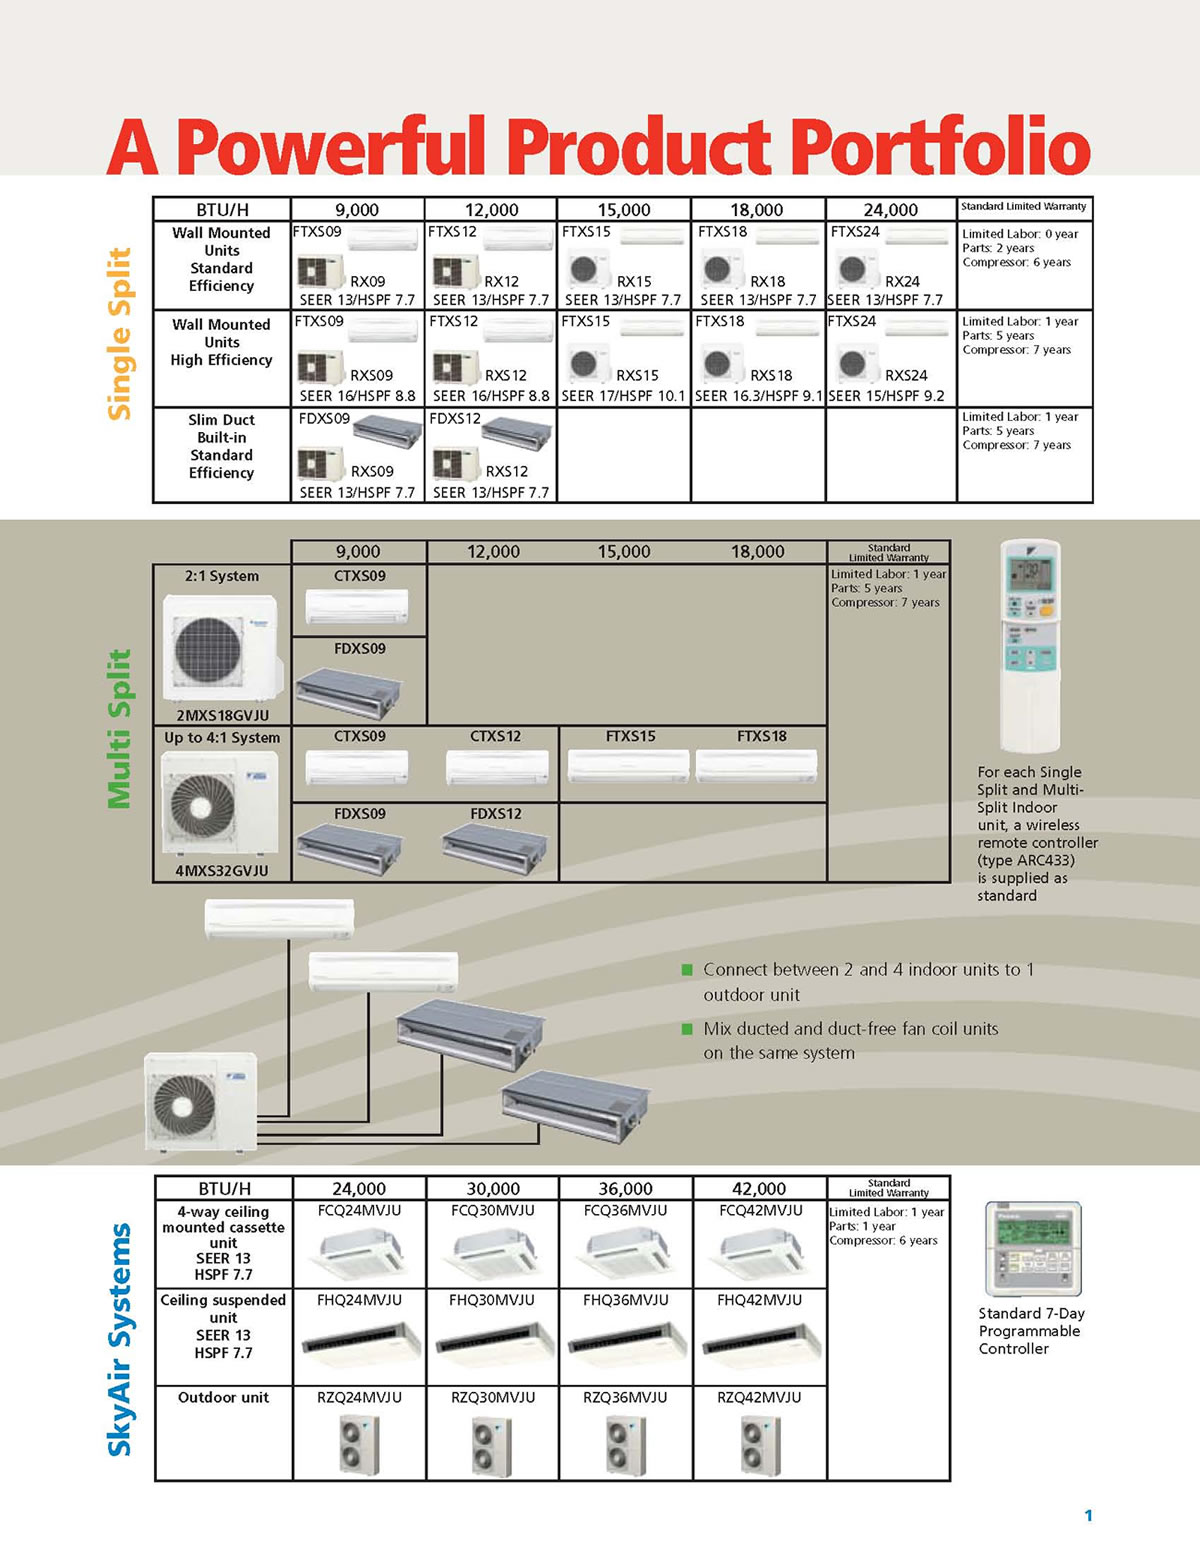 Daikin_multi_split ny nj heat pump ductless and central installation & repair fujitsu air conditioner wiring diagram at webbmarketing.co